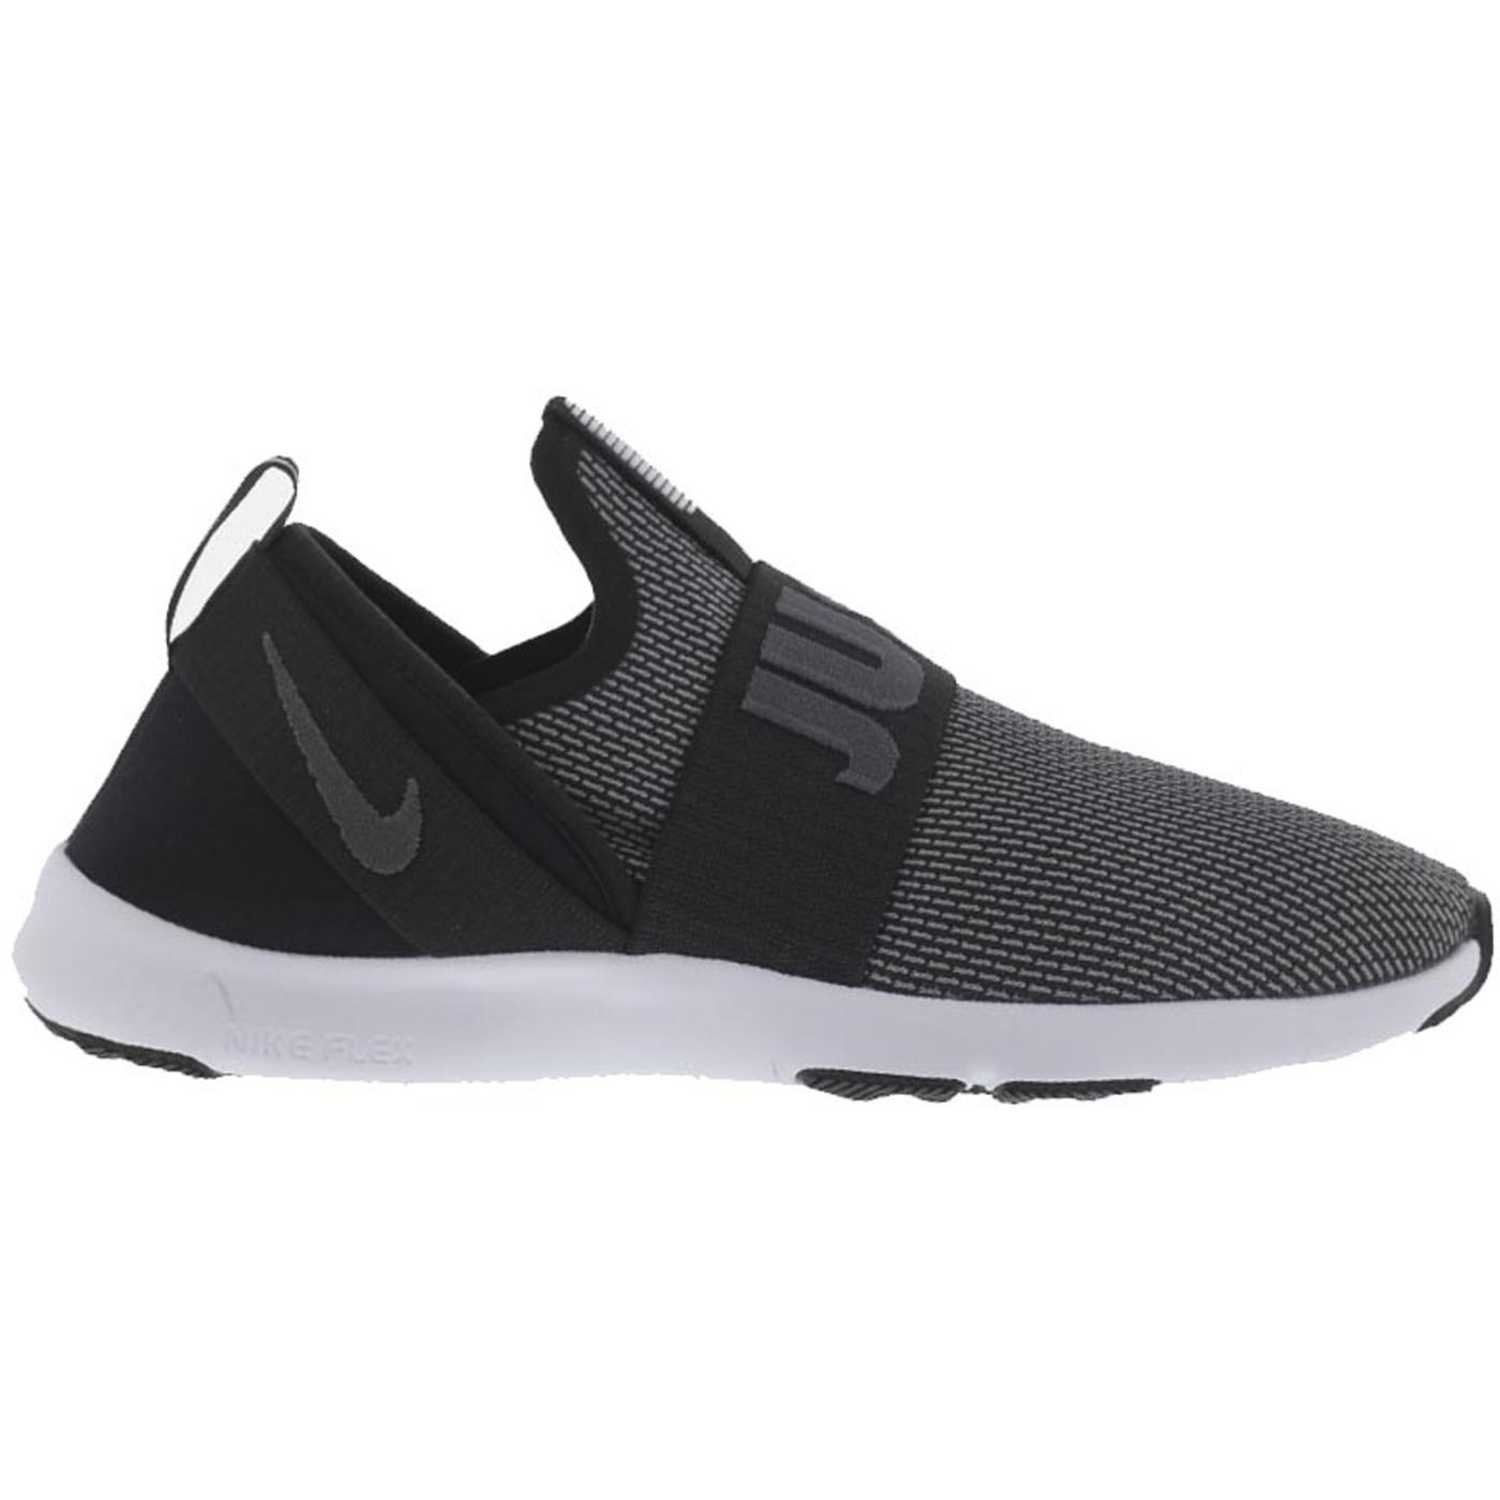 Nike W NIKE FLEX MOTION TRAINER NEGRO / GRIS Mujeres